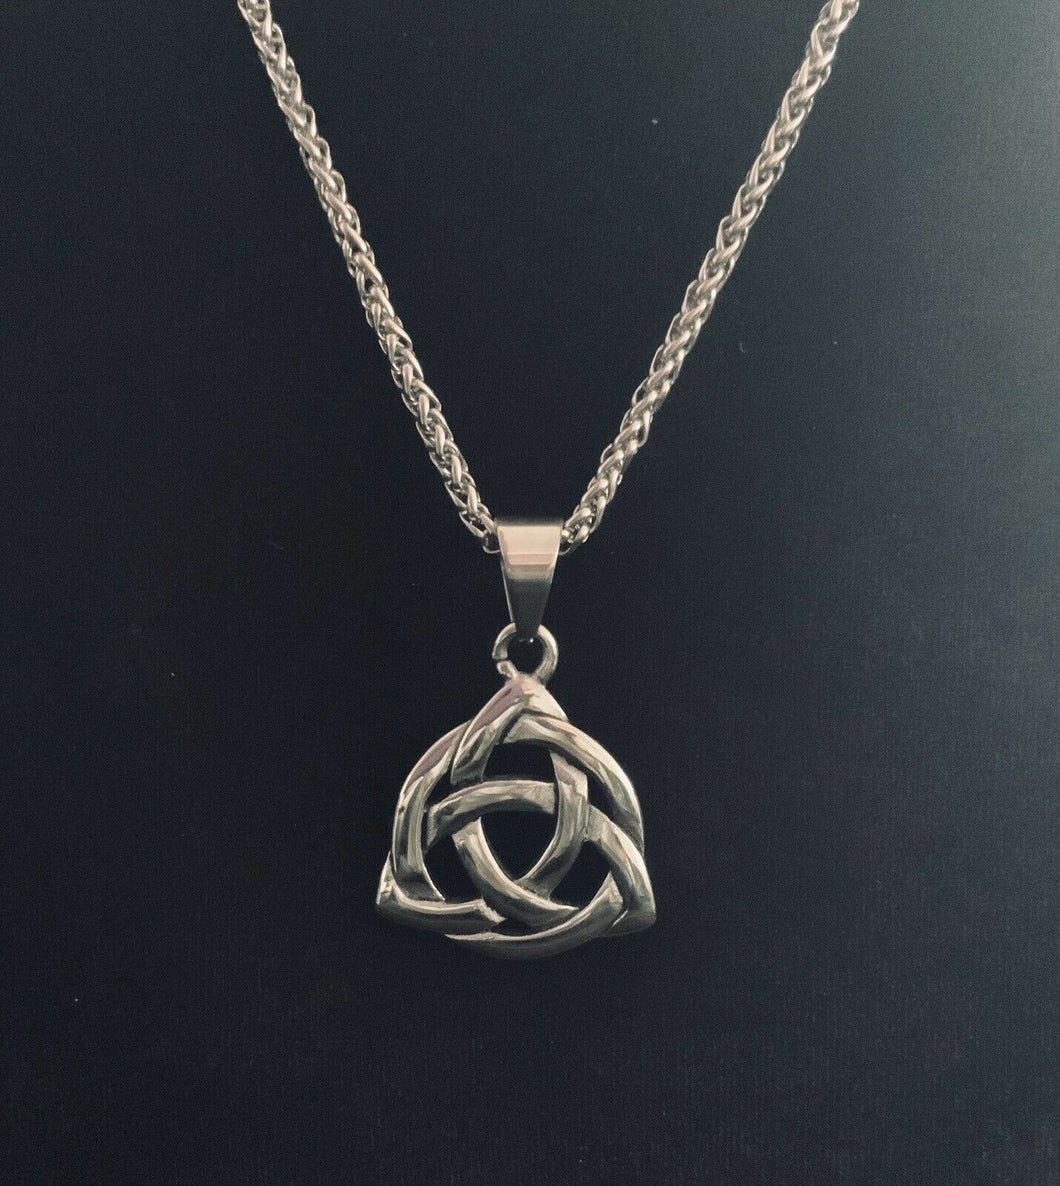 Large 316L Stainless Steel Celtic Trinity Knot Pendant FREE Chain